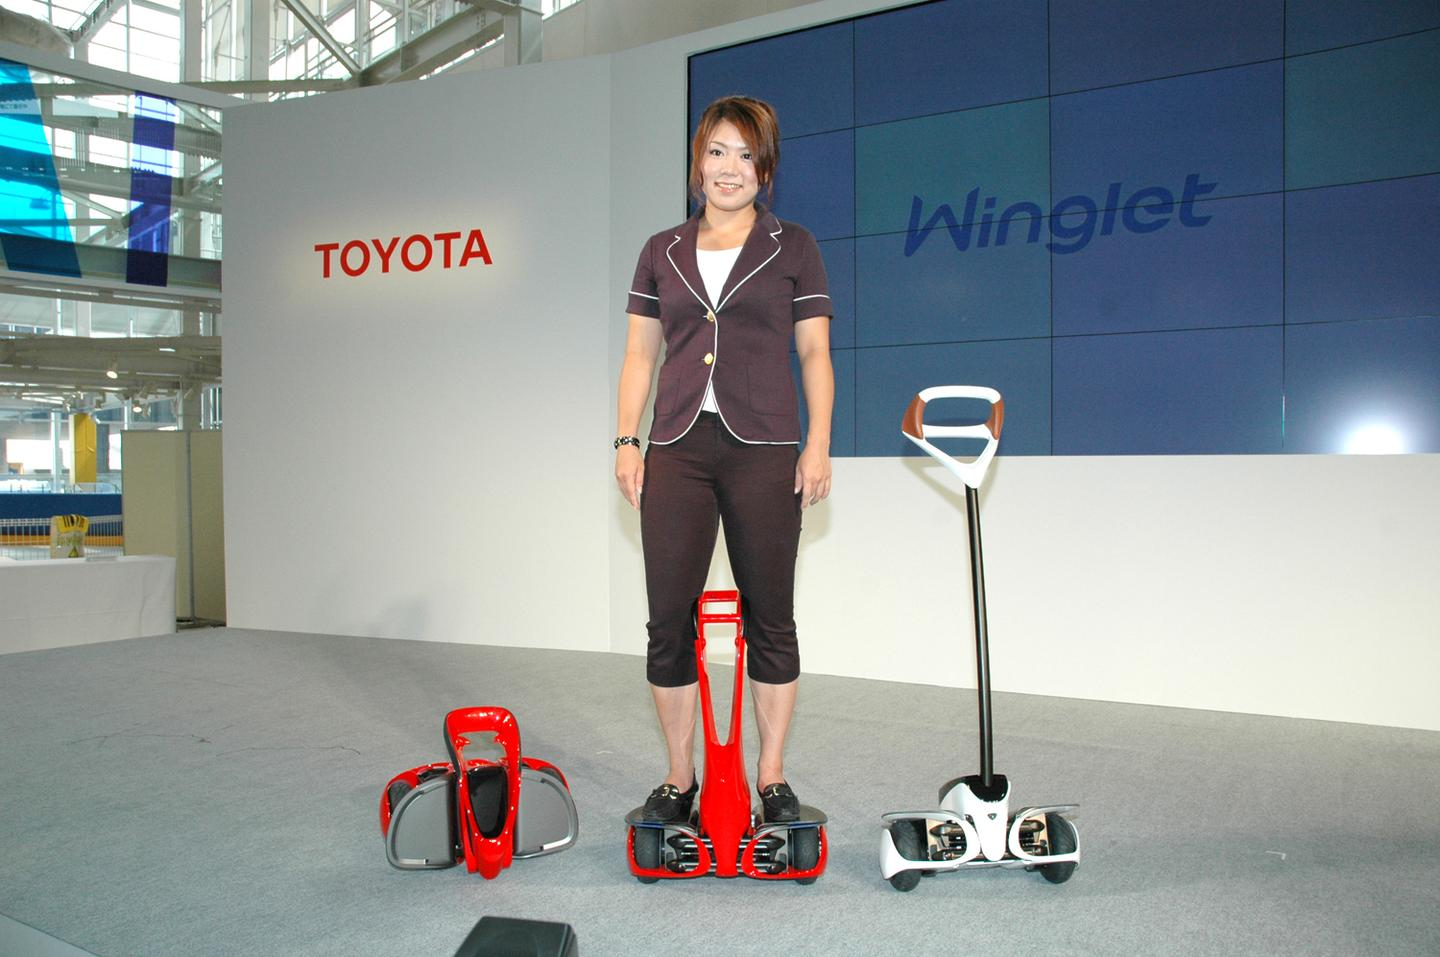 Toyota's Winglets are like a miniature Segway, with the largest weighing around 12kg and the smallest 9.9 kg